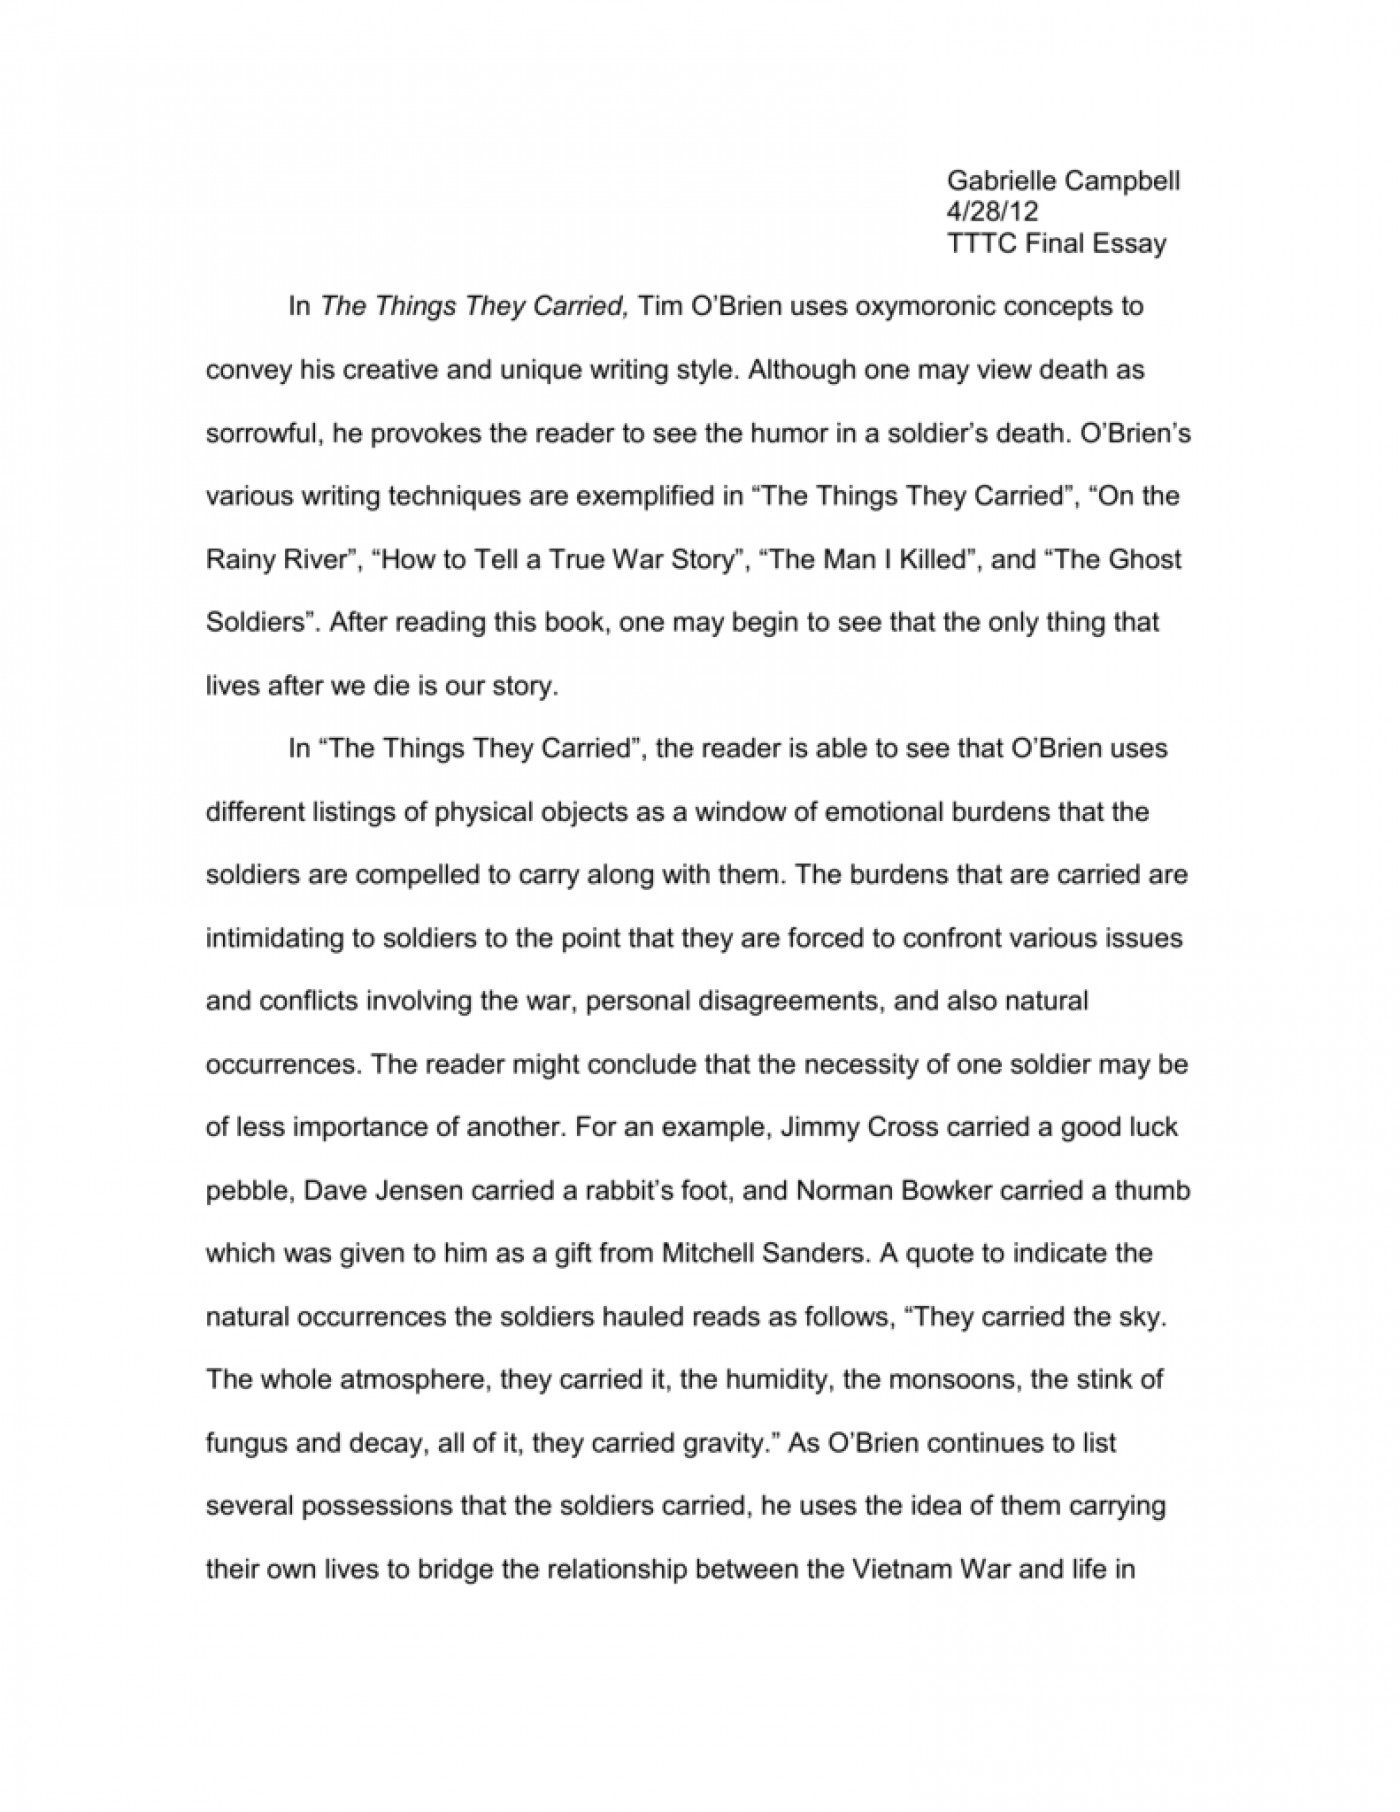 001 The Things They Carried Essay Example 008028277 1 Incredible Introduction Questions Prompts 1400